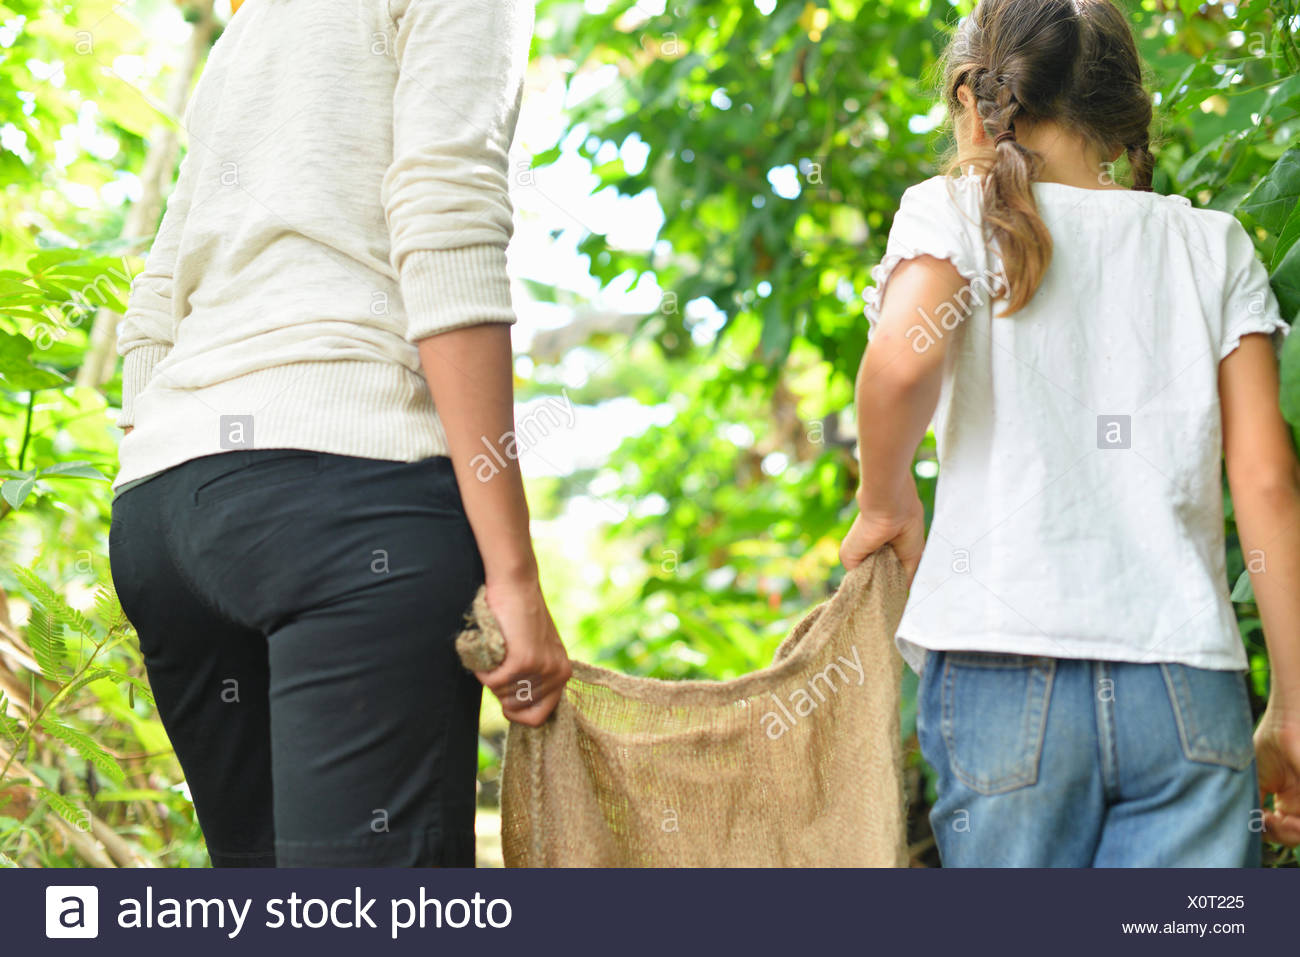 Rear view of woman and girl carrying burlap sack through garden - Stock Image